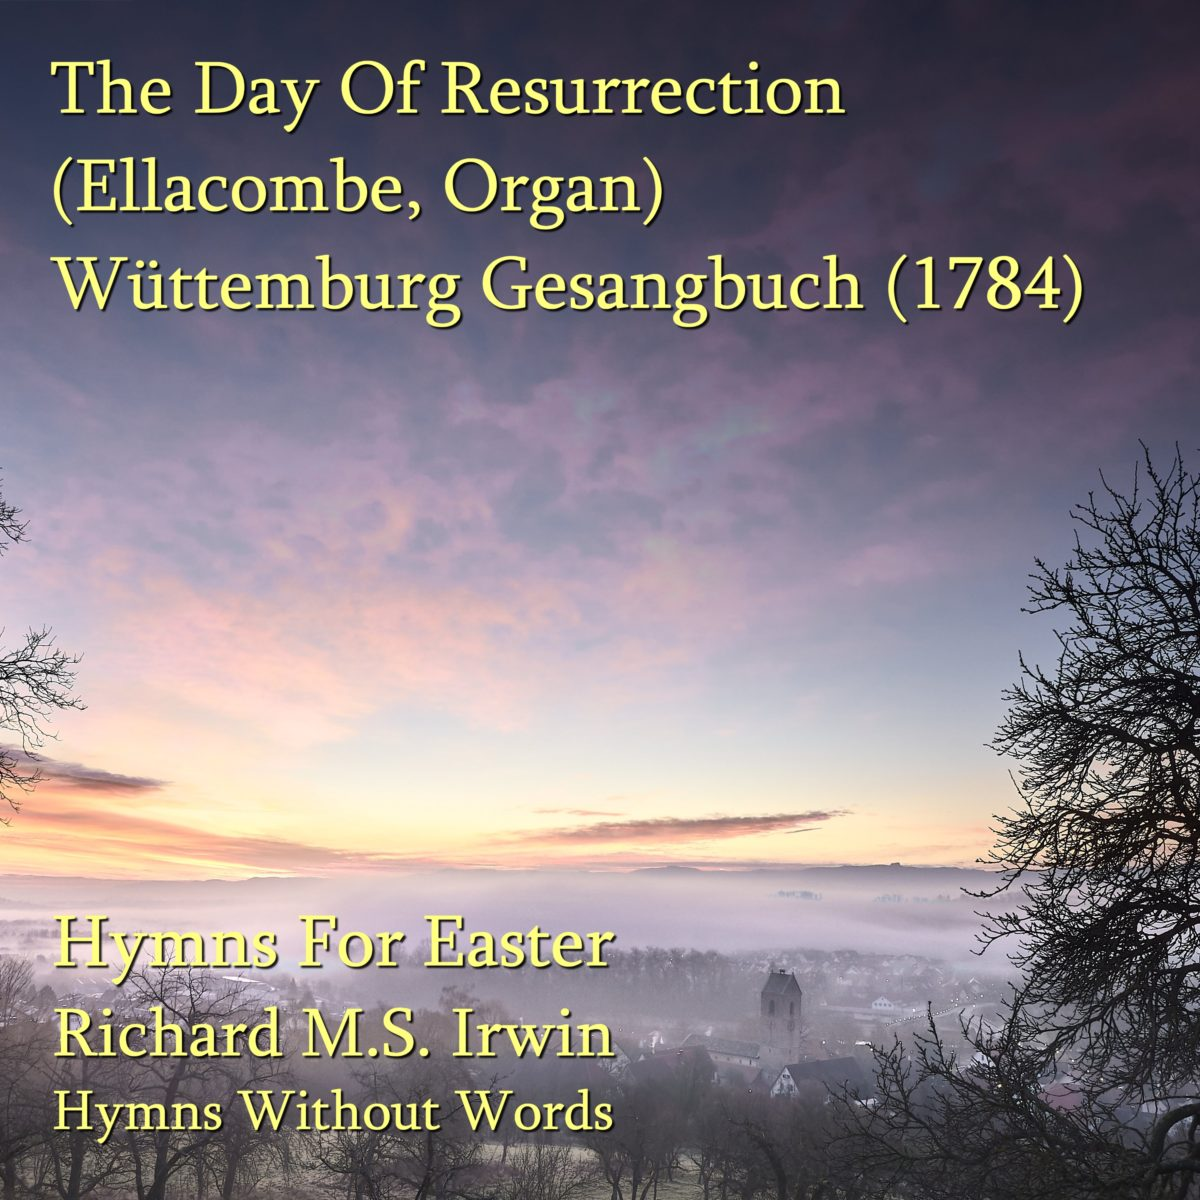 The Day Of Resurrection (Ellacombe – 3 Verses) – Organ